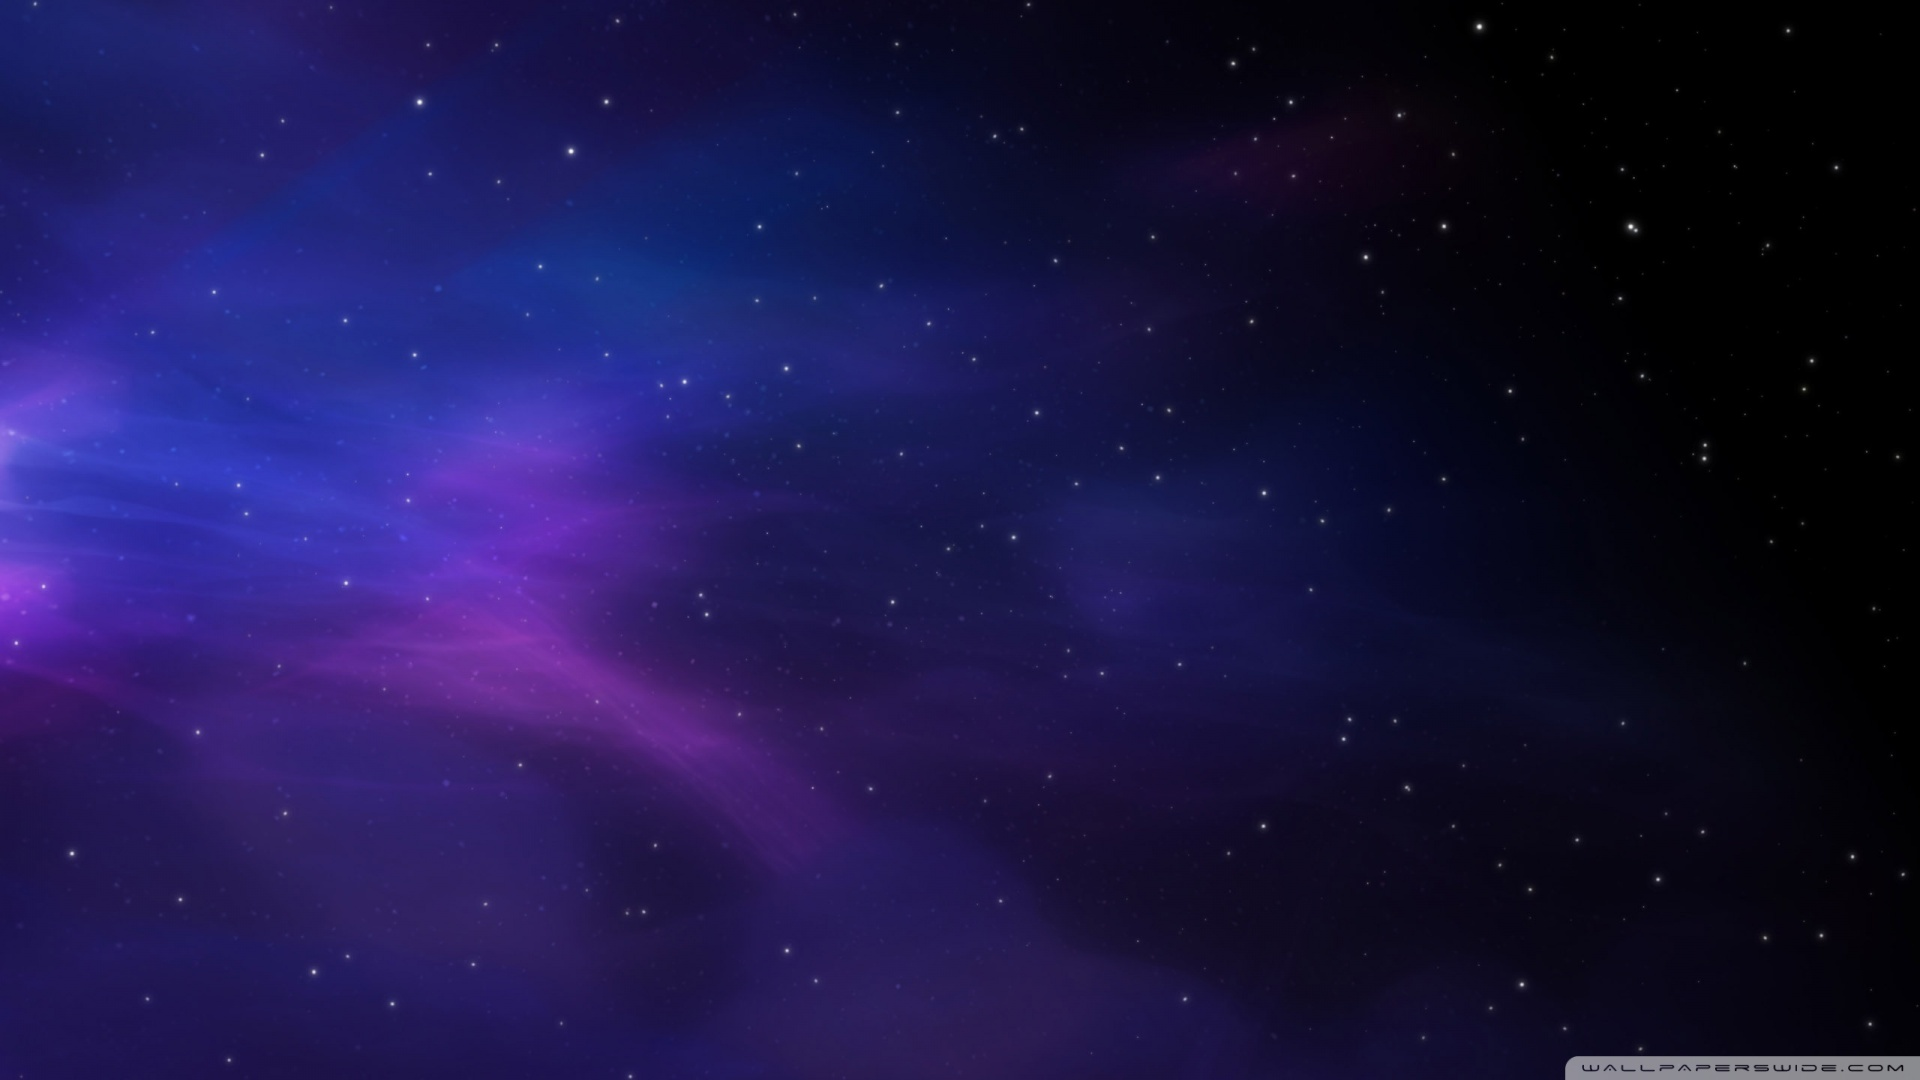 Space Powerpoint Background wallpaper   905984 1920x1080